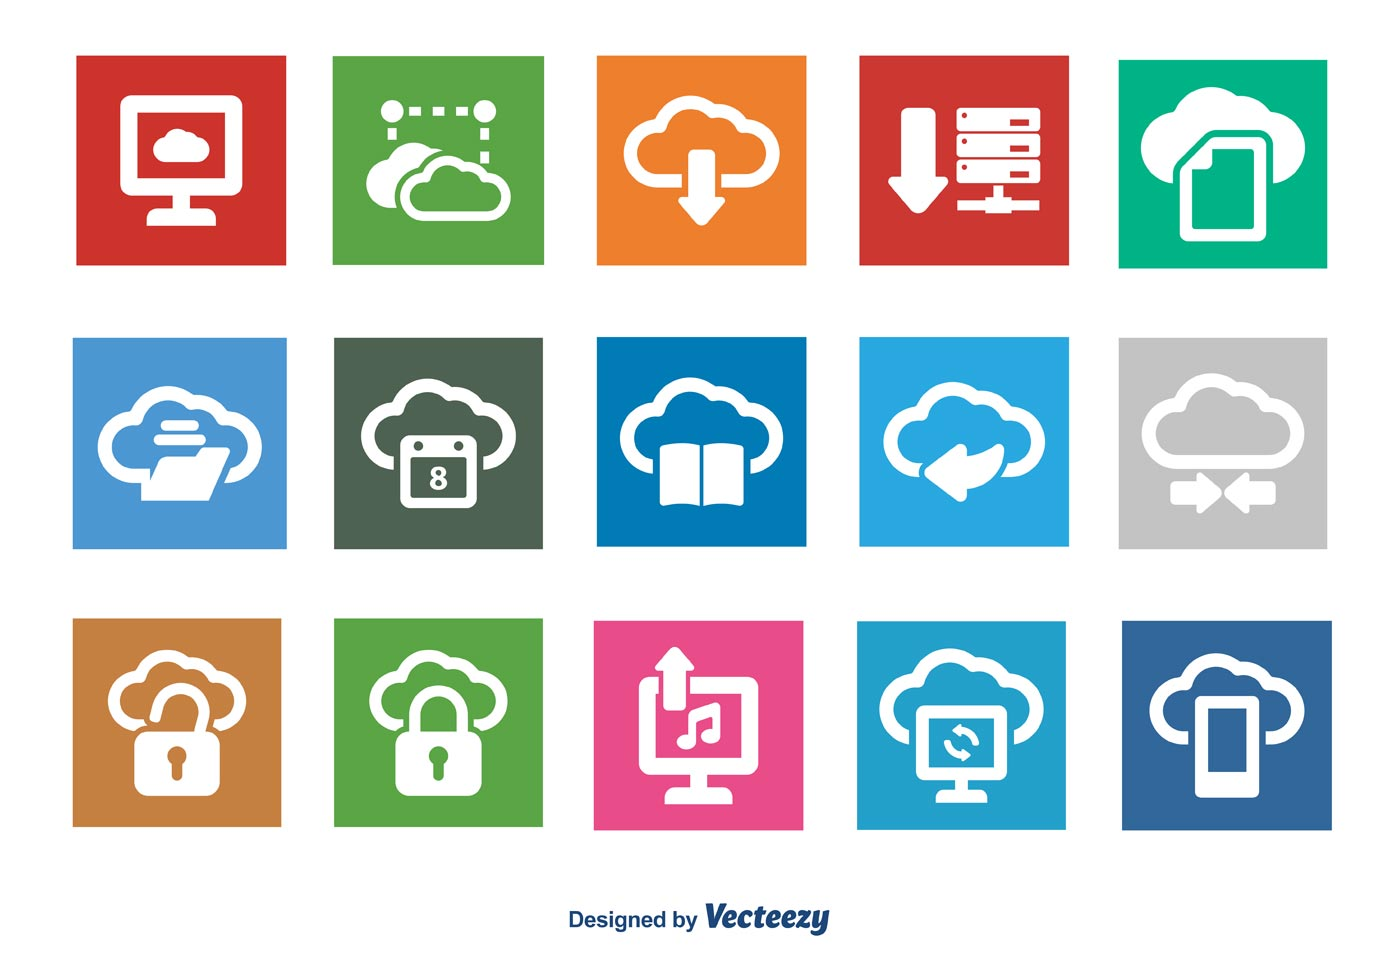 Cloud Computing Icon Free Vector Art - (27548 Free Downloads)